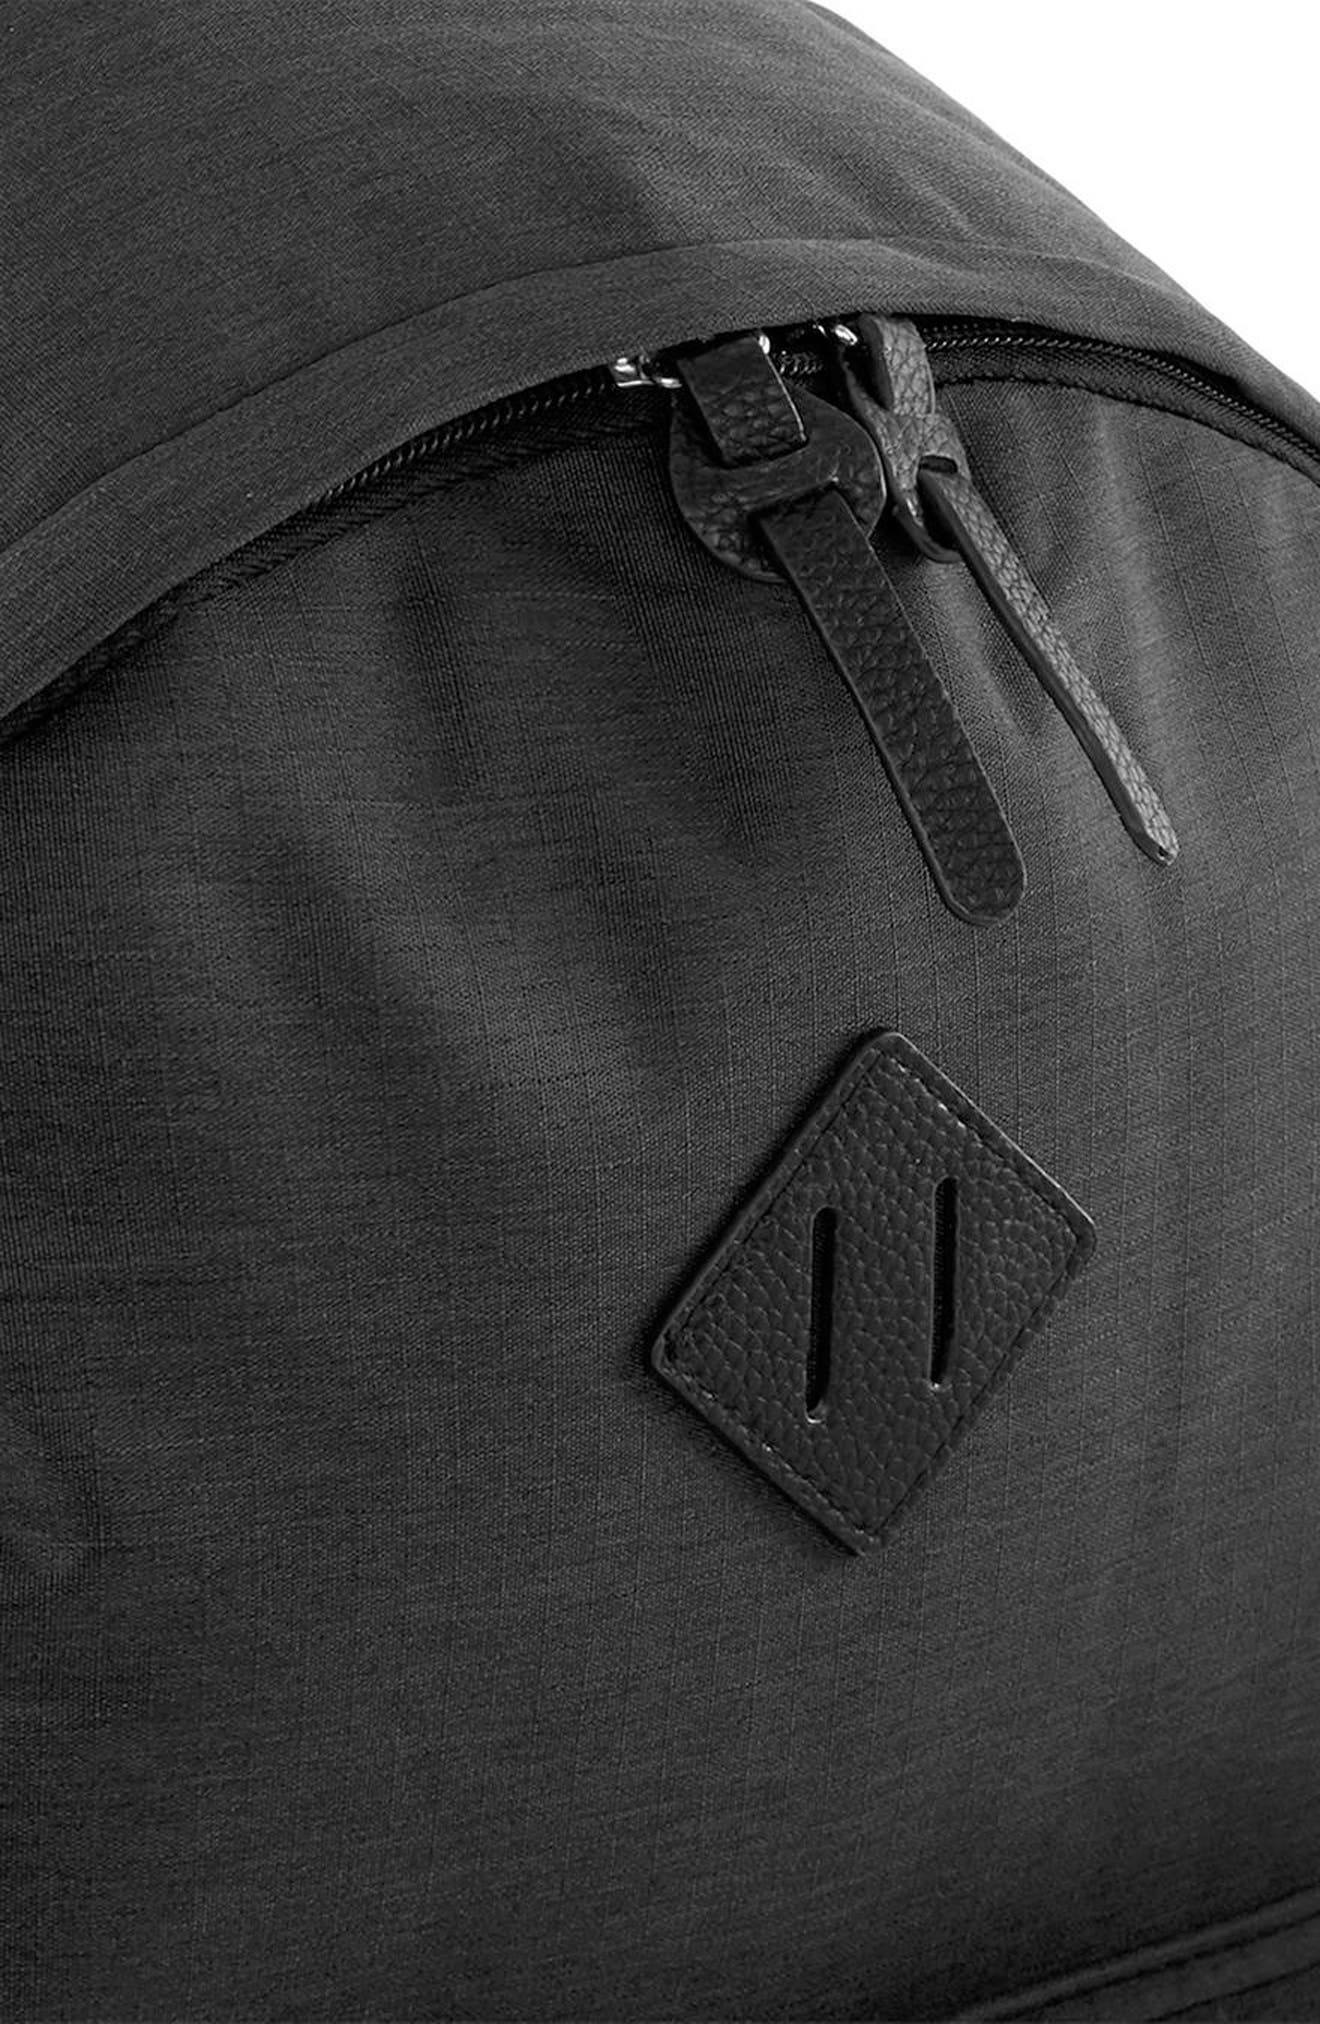 Ripstop Backpack,                             Alternate thumbnail 3, color,                             001